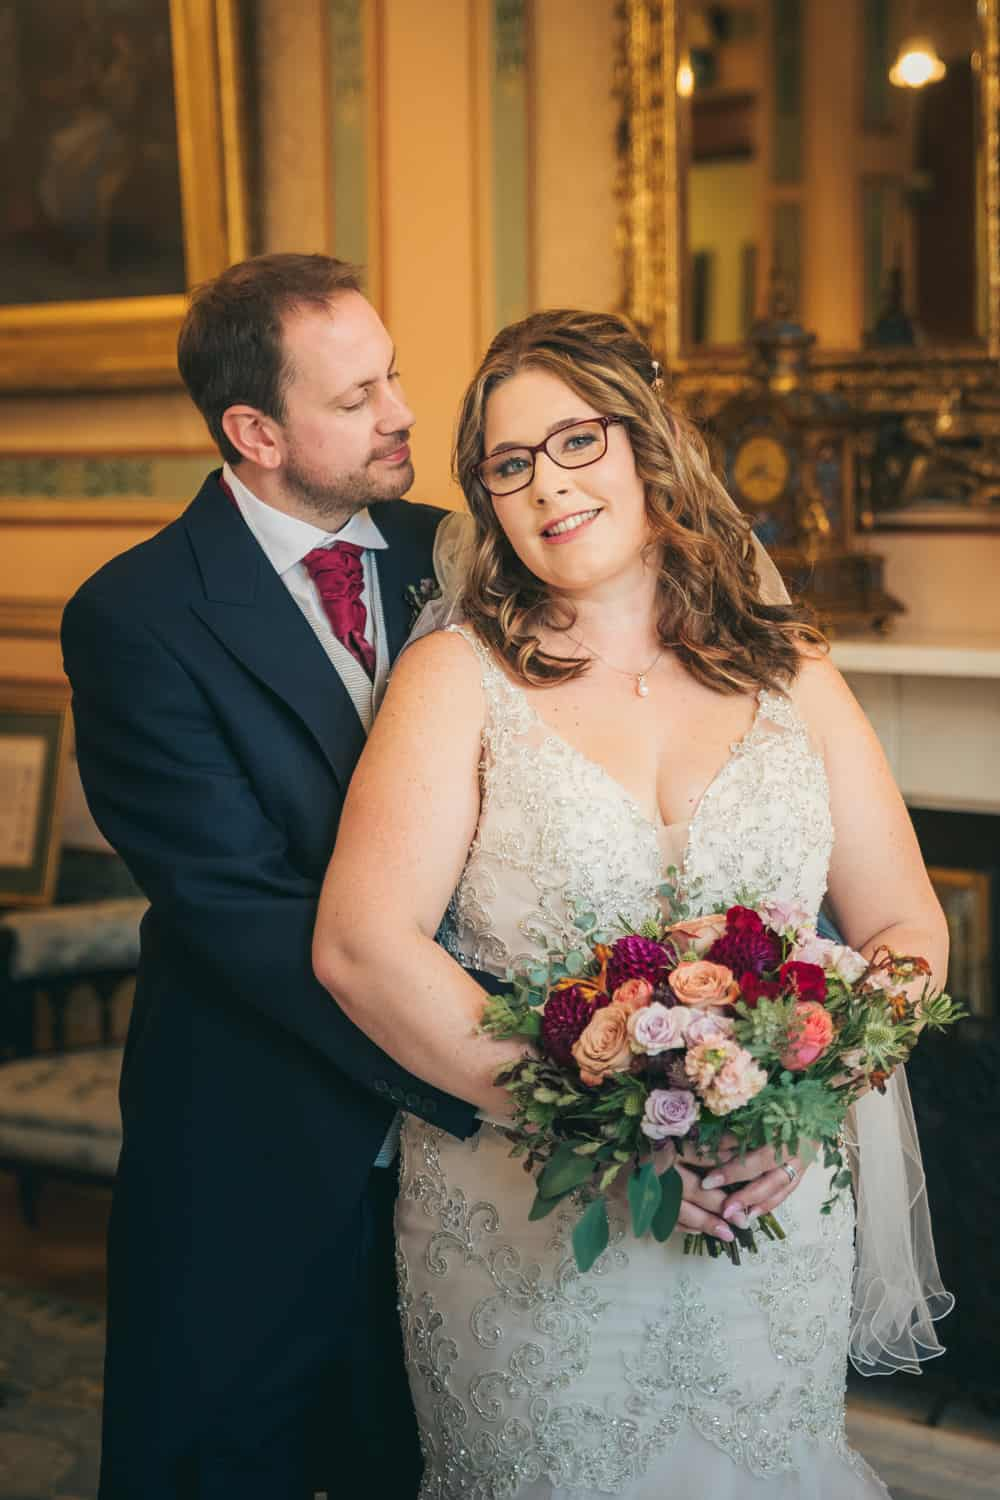 Wedding Photography The Lord Mayors Mansion House